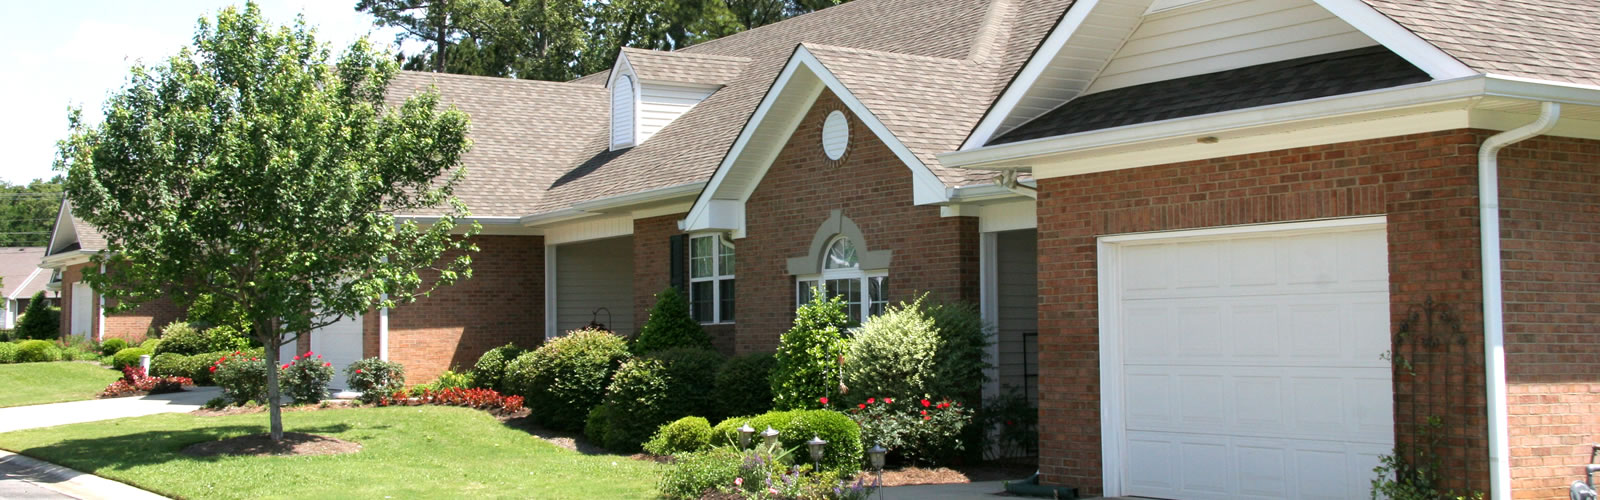 Cottages On Wesleyan Assisted And Independent Living